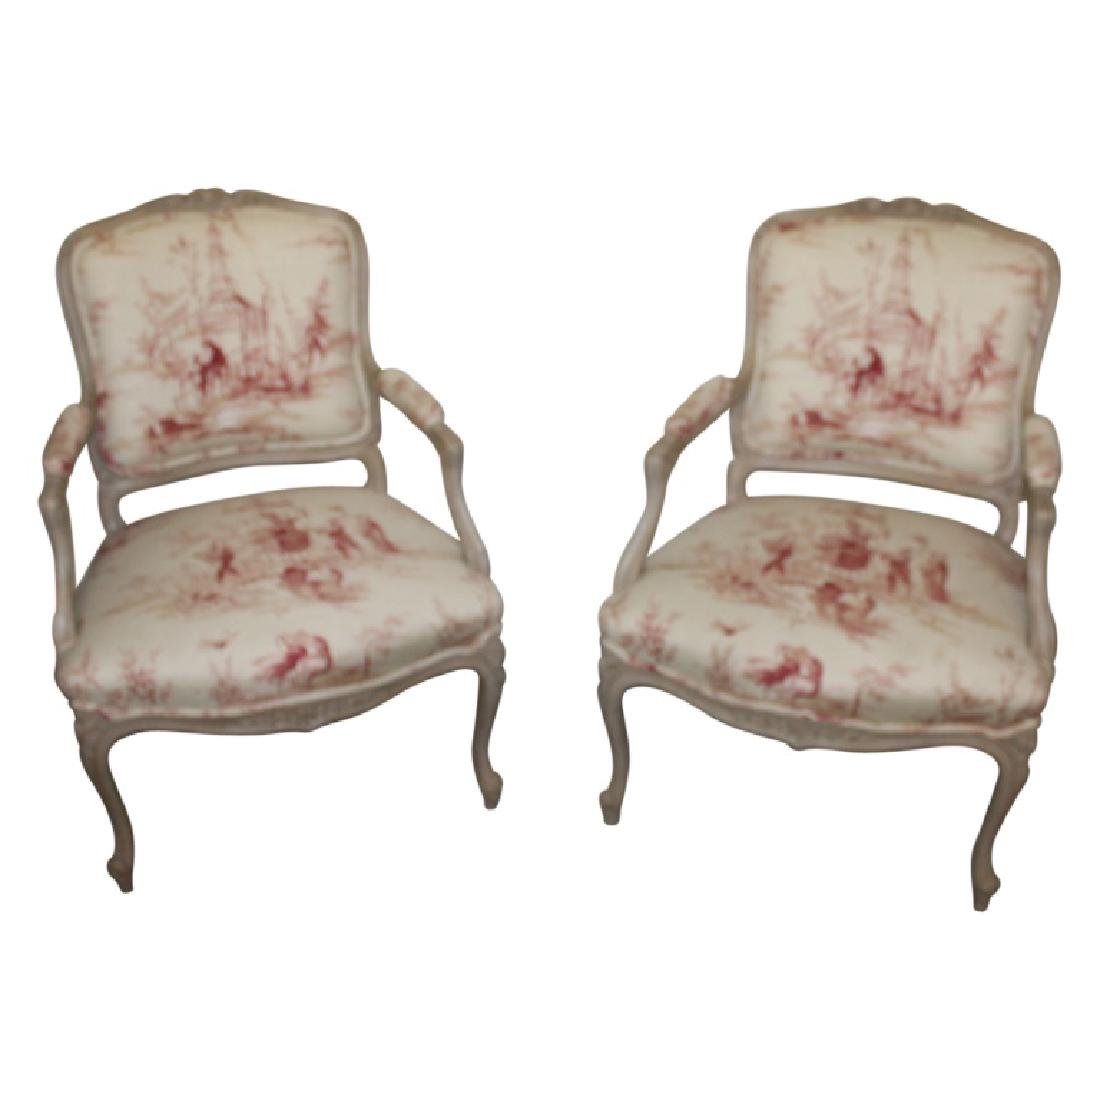 Pair of French Open Arm Chairs